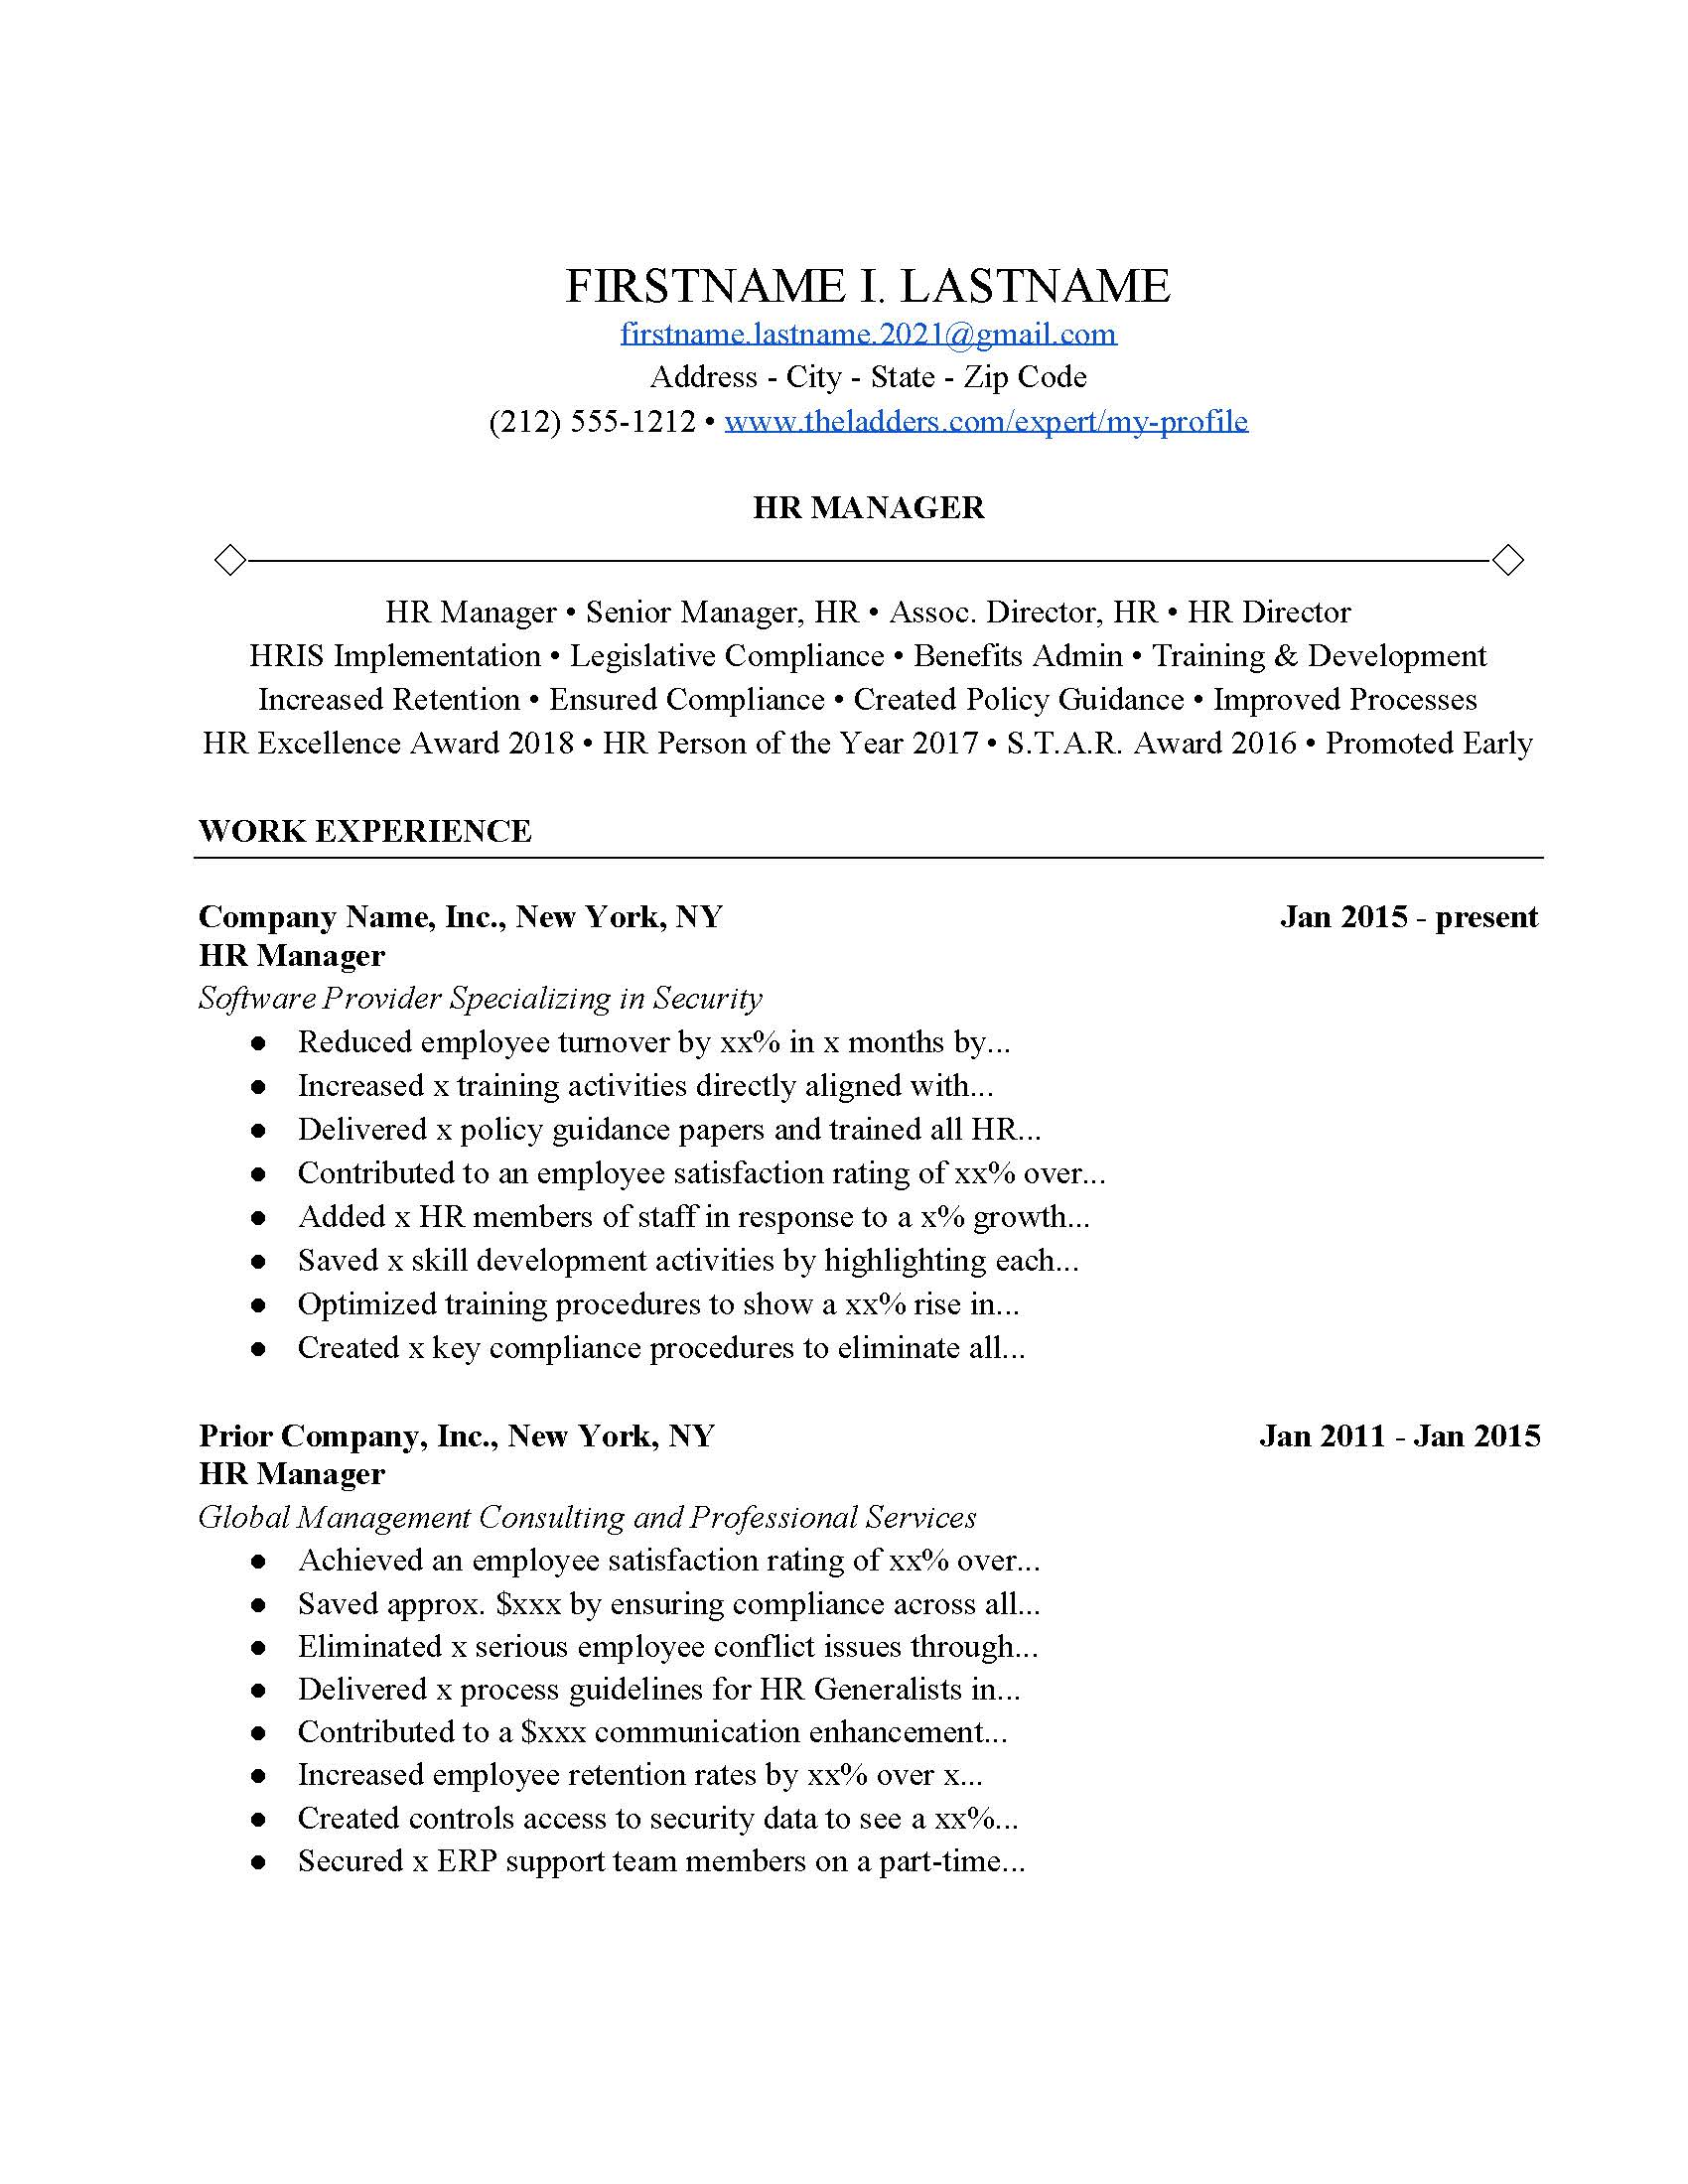 hr manager resume example  free download